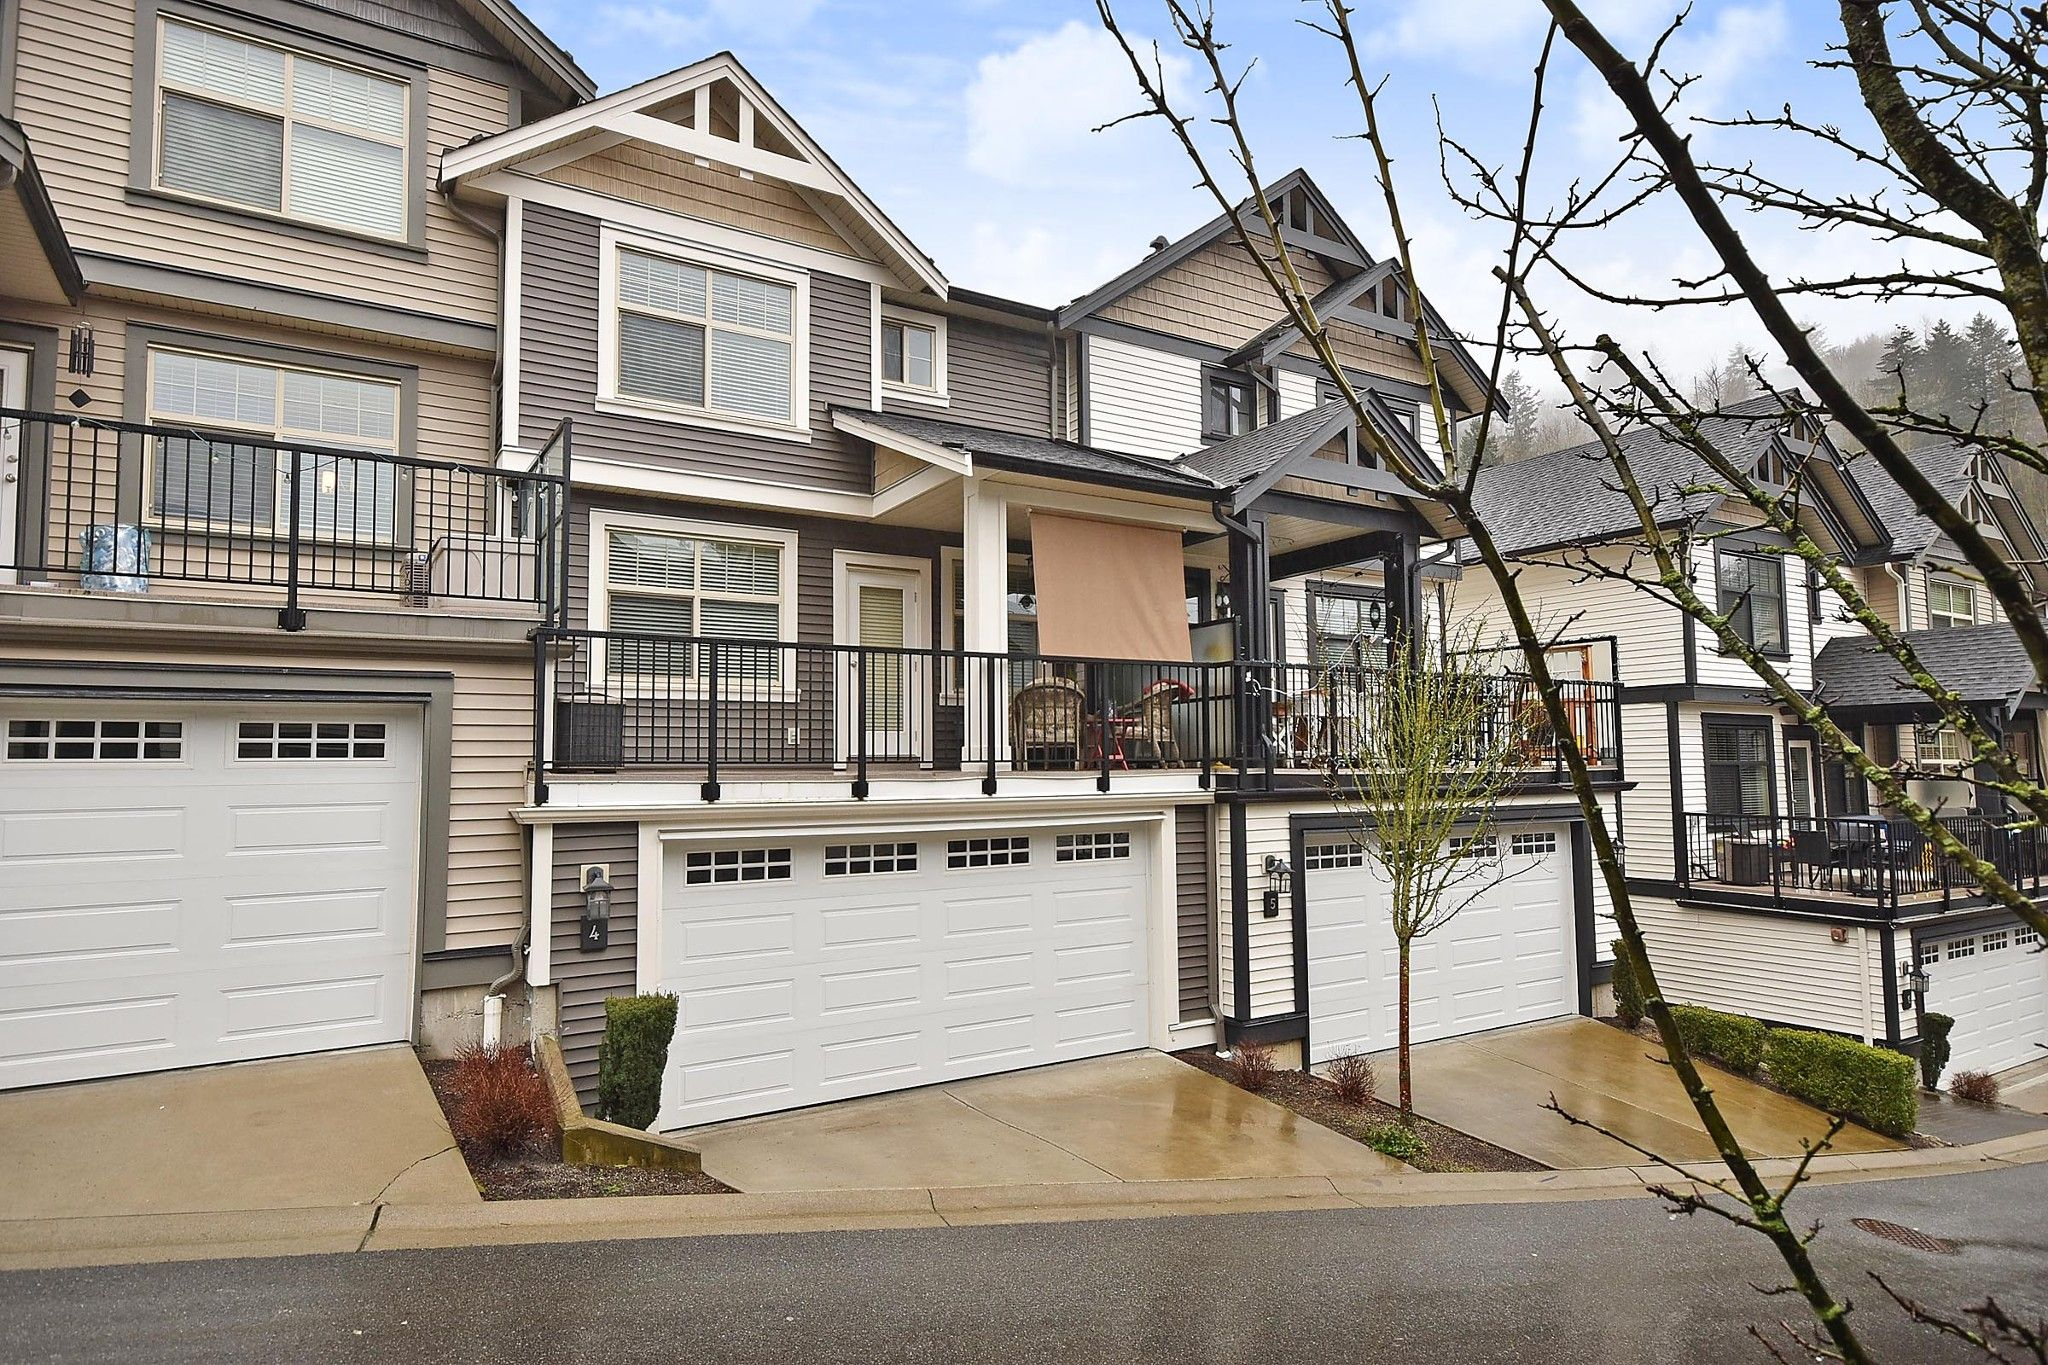 """Photo 20: Photos: 4 35298 MARSHALL Road in Abbotsford: Abbotsford East Townhouse for sale in """"Eagles Gate"""" : MLS®# R2434344"""